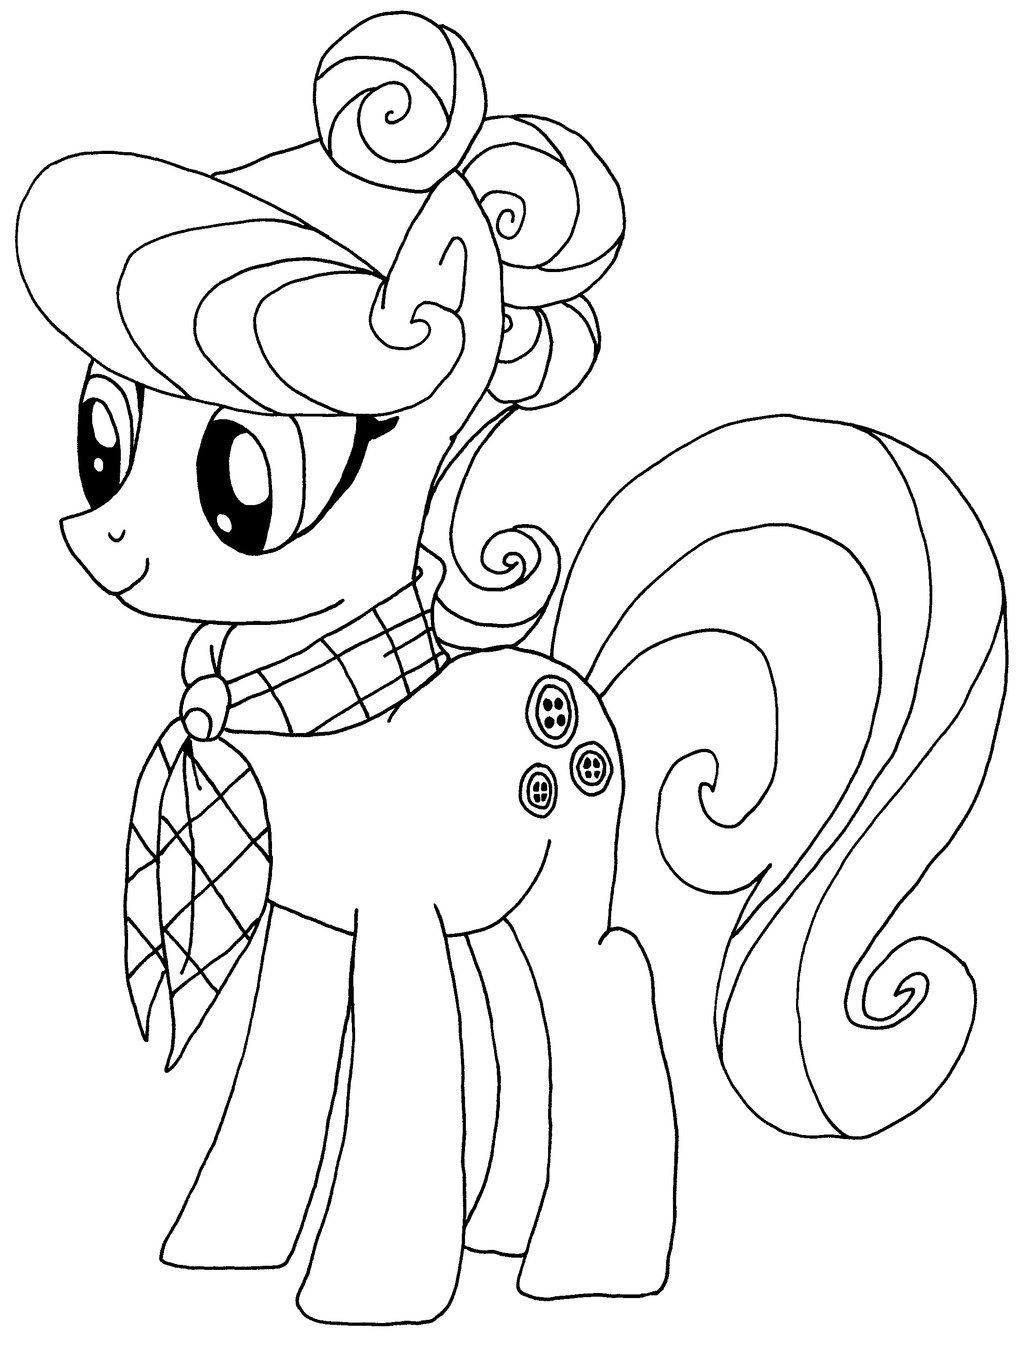 my little pony coloring pages - Google-søgning | pony1 | Pinterest